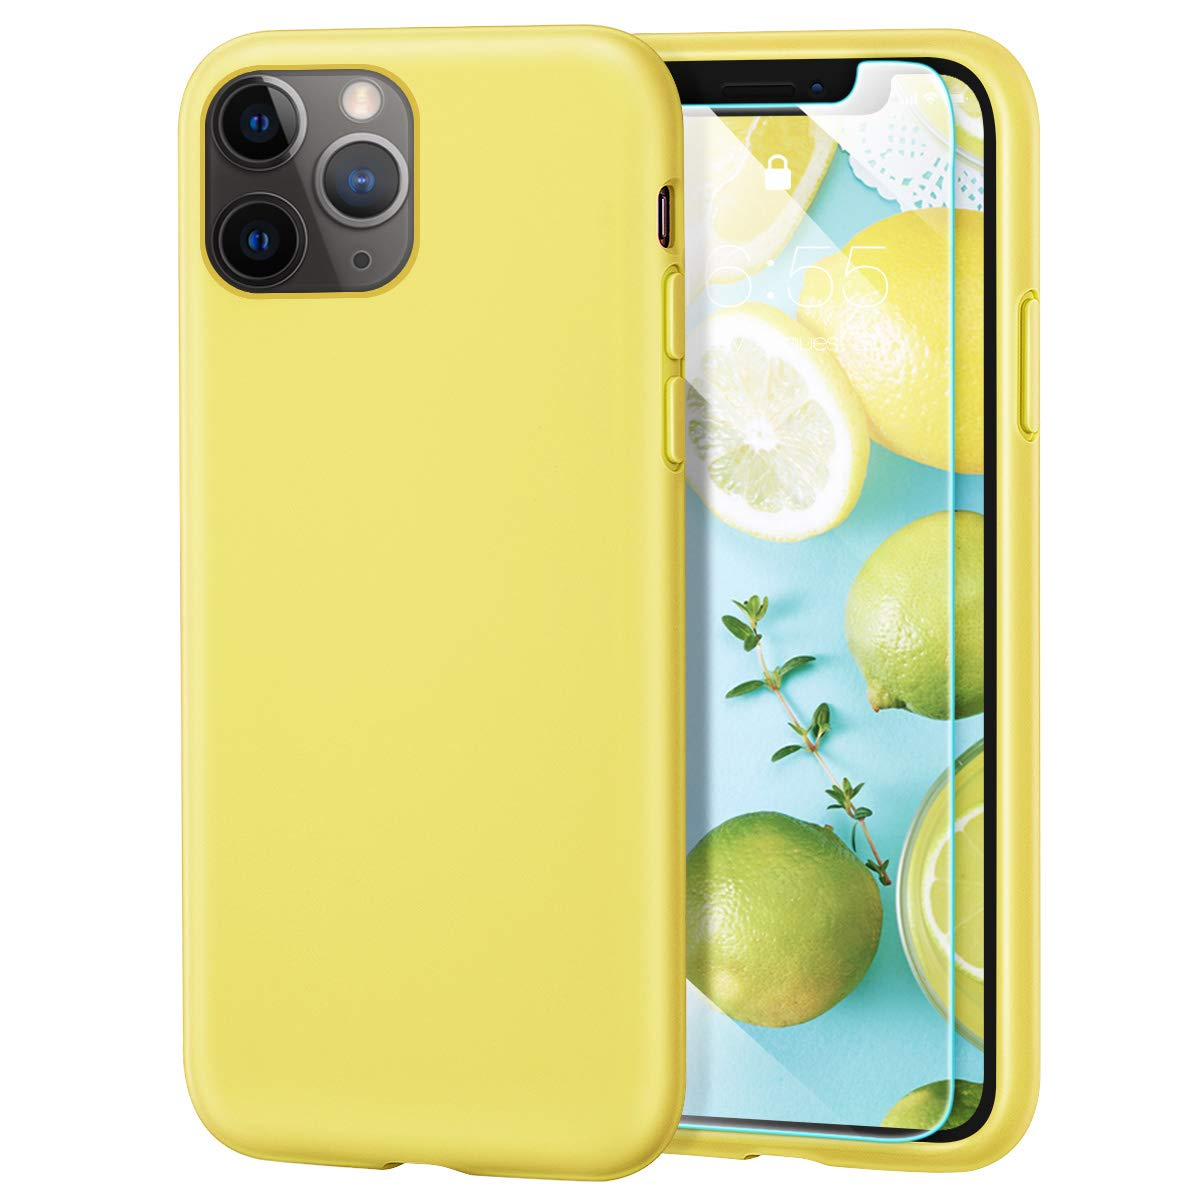 MILPROX iPhone 11 Pro Max Case with Screen Protector, Liquid Silicone Gel Rubber Shockproof Slim Shell, Soft Microfiber Cloth Lining Cushion Cover for iPhone 11 Pro Max 6.5 inch (2019)-Lemon Yellow